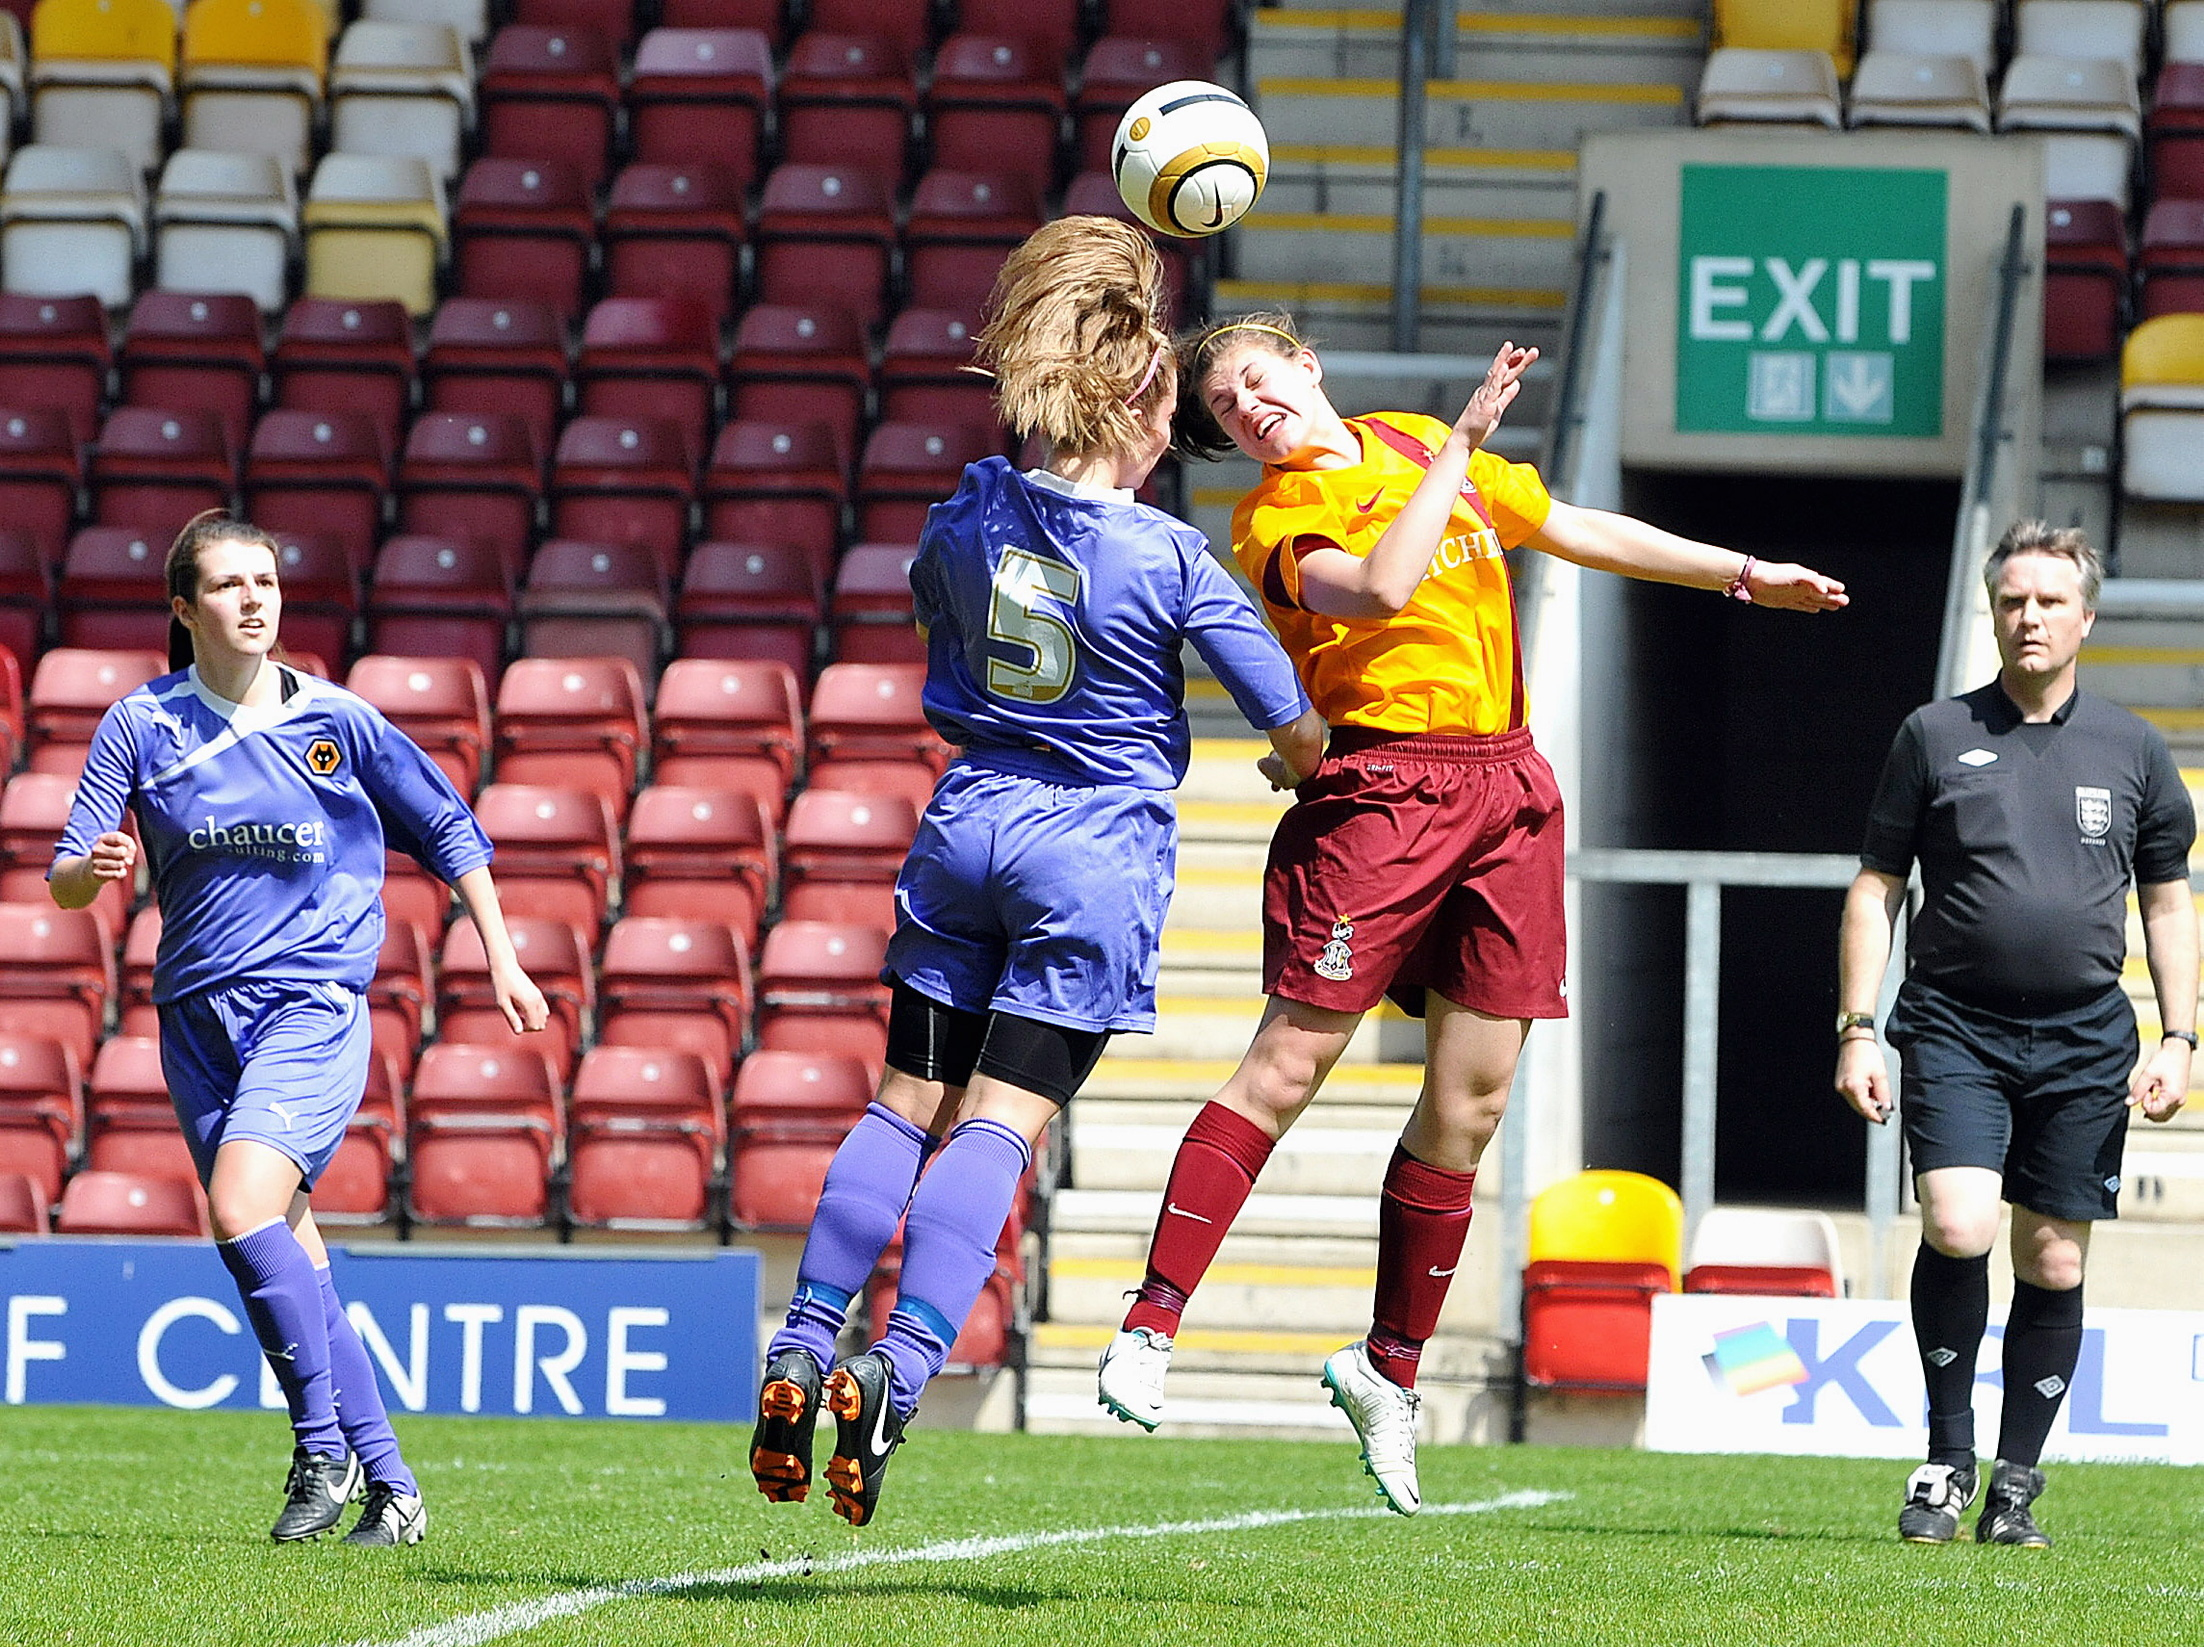 Molly Sharpe bagged a brace for Bradford City's women